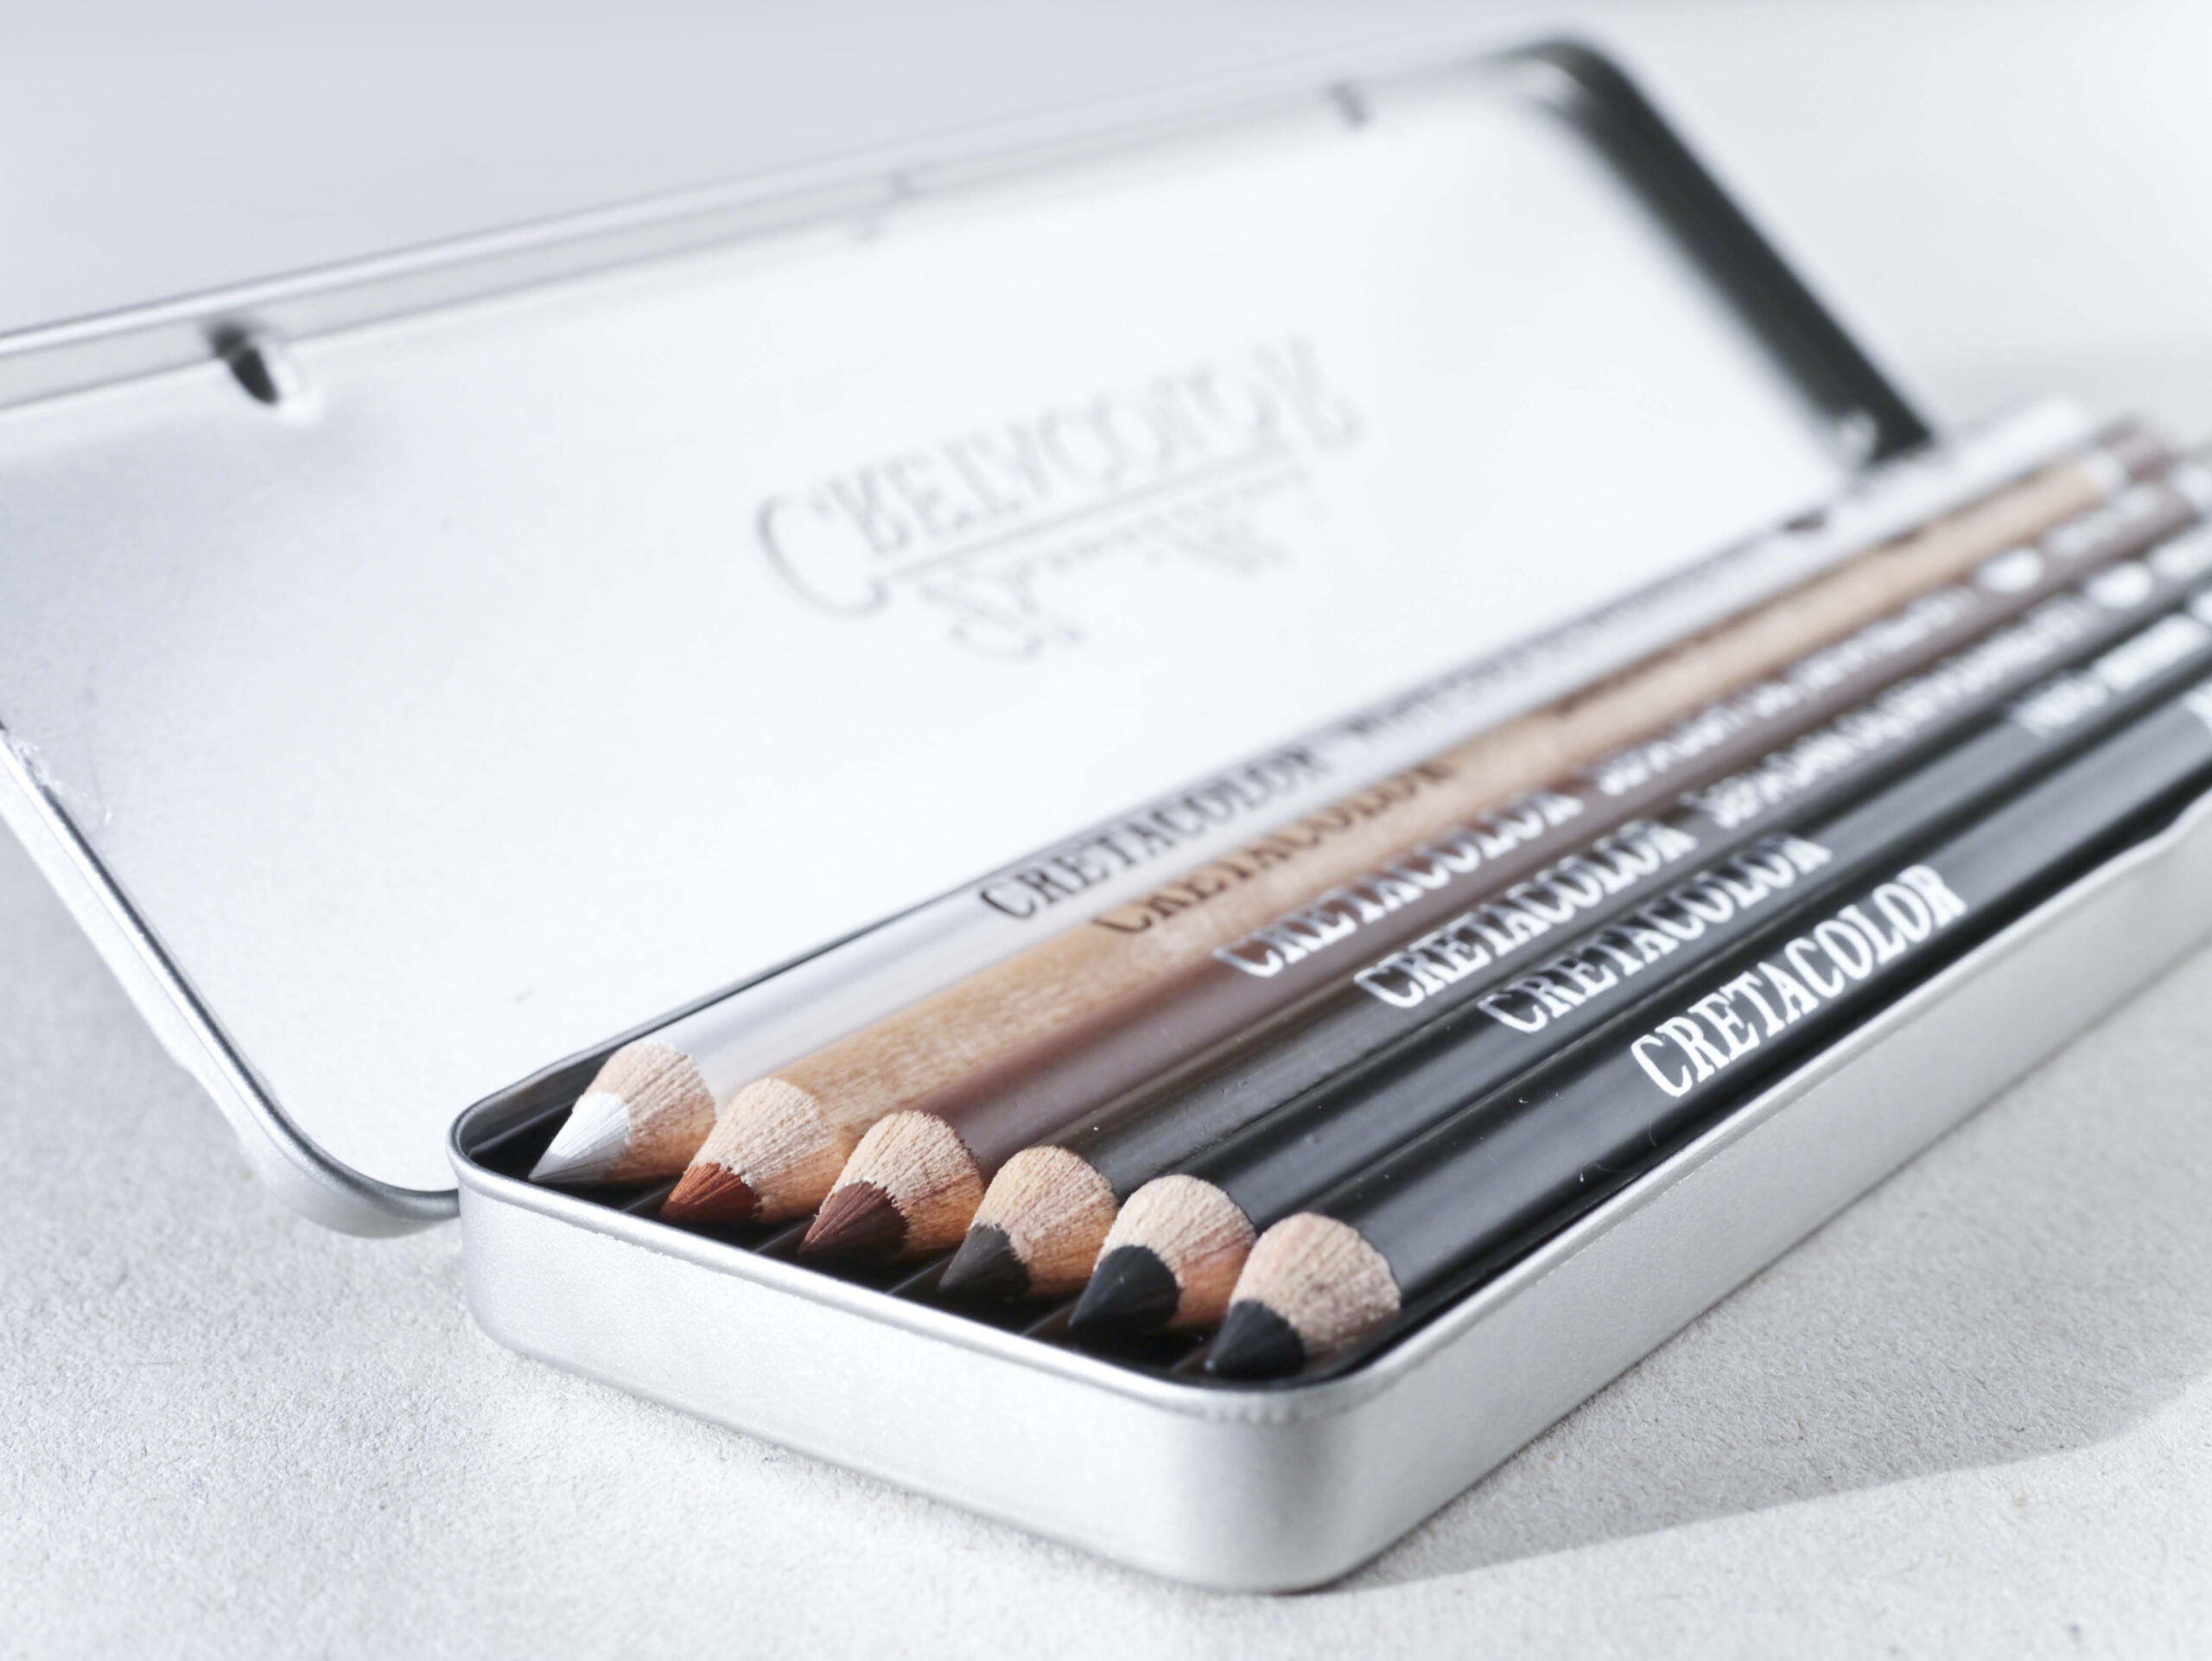 Cretacolor Oil Pencil Set